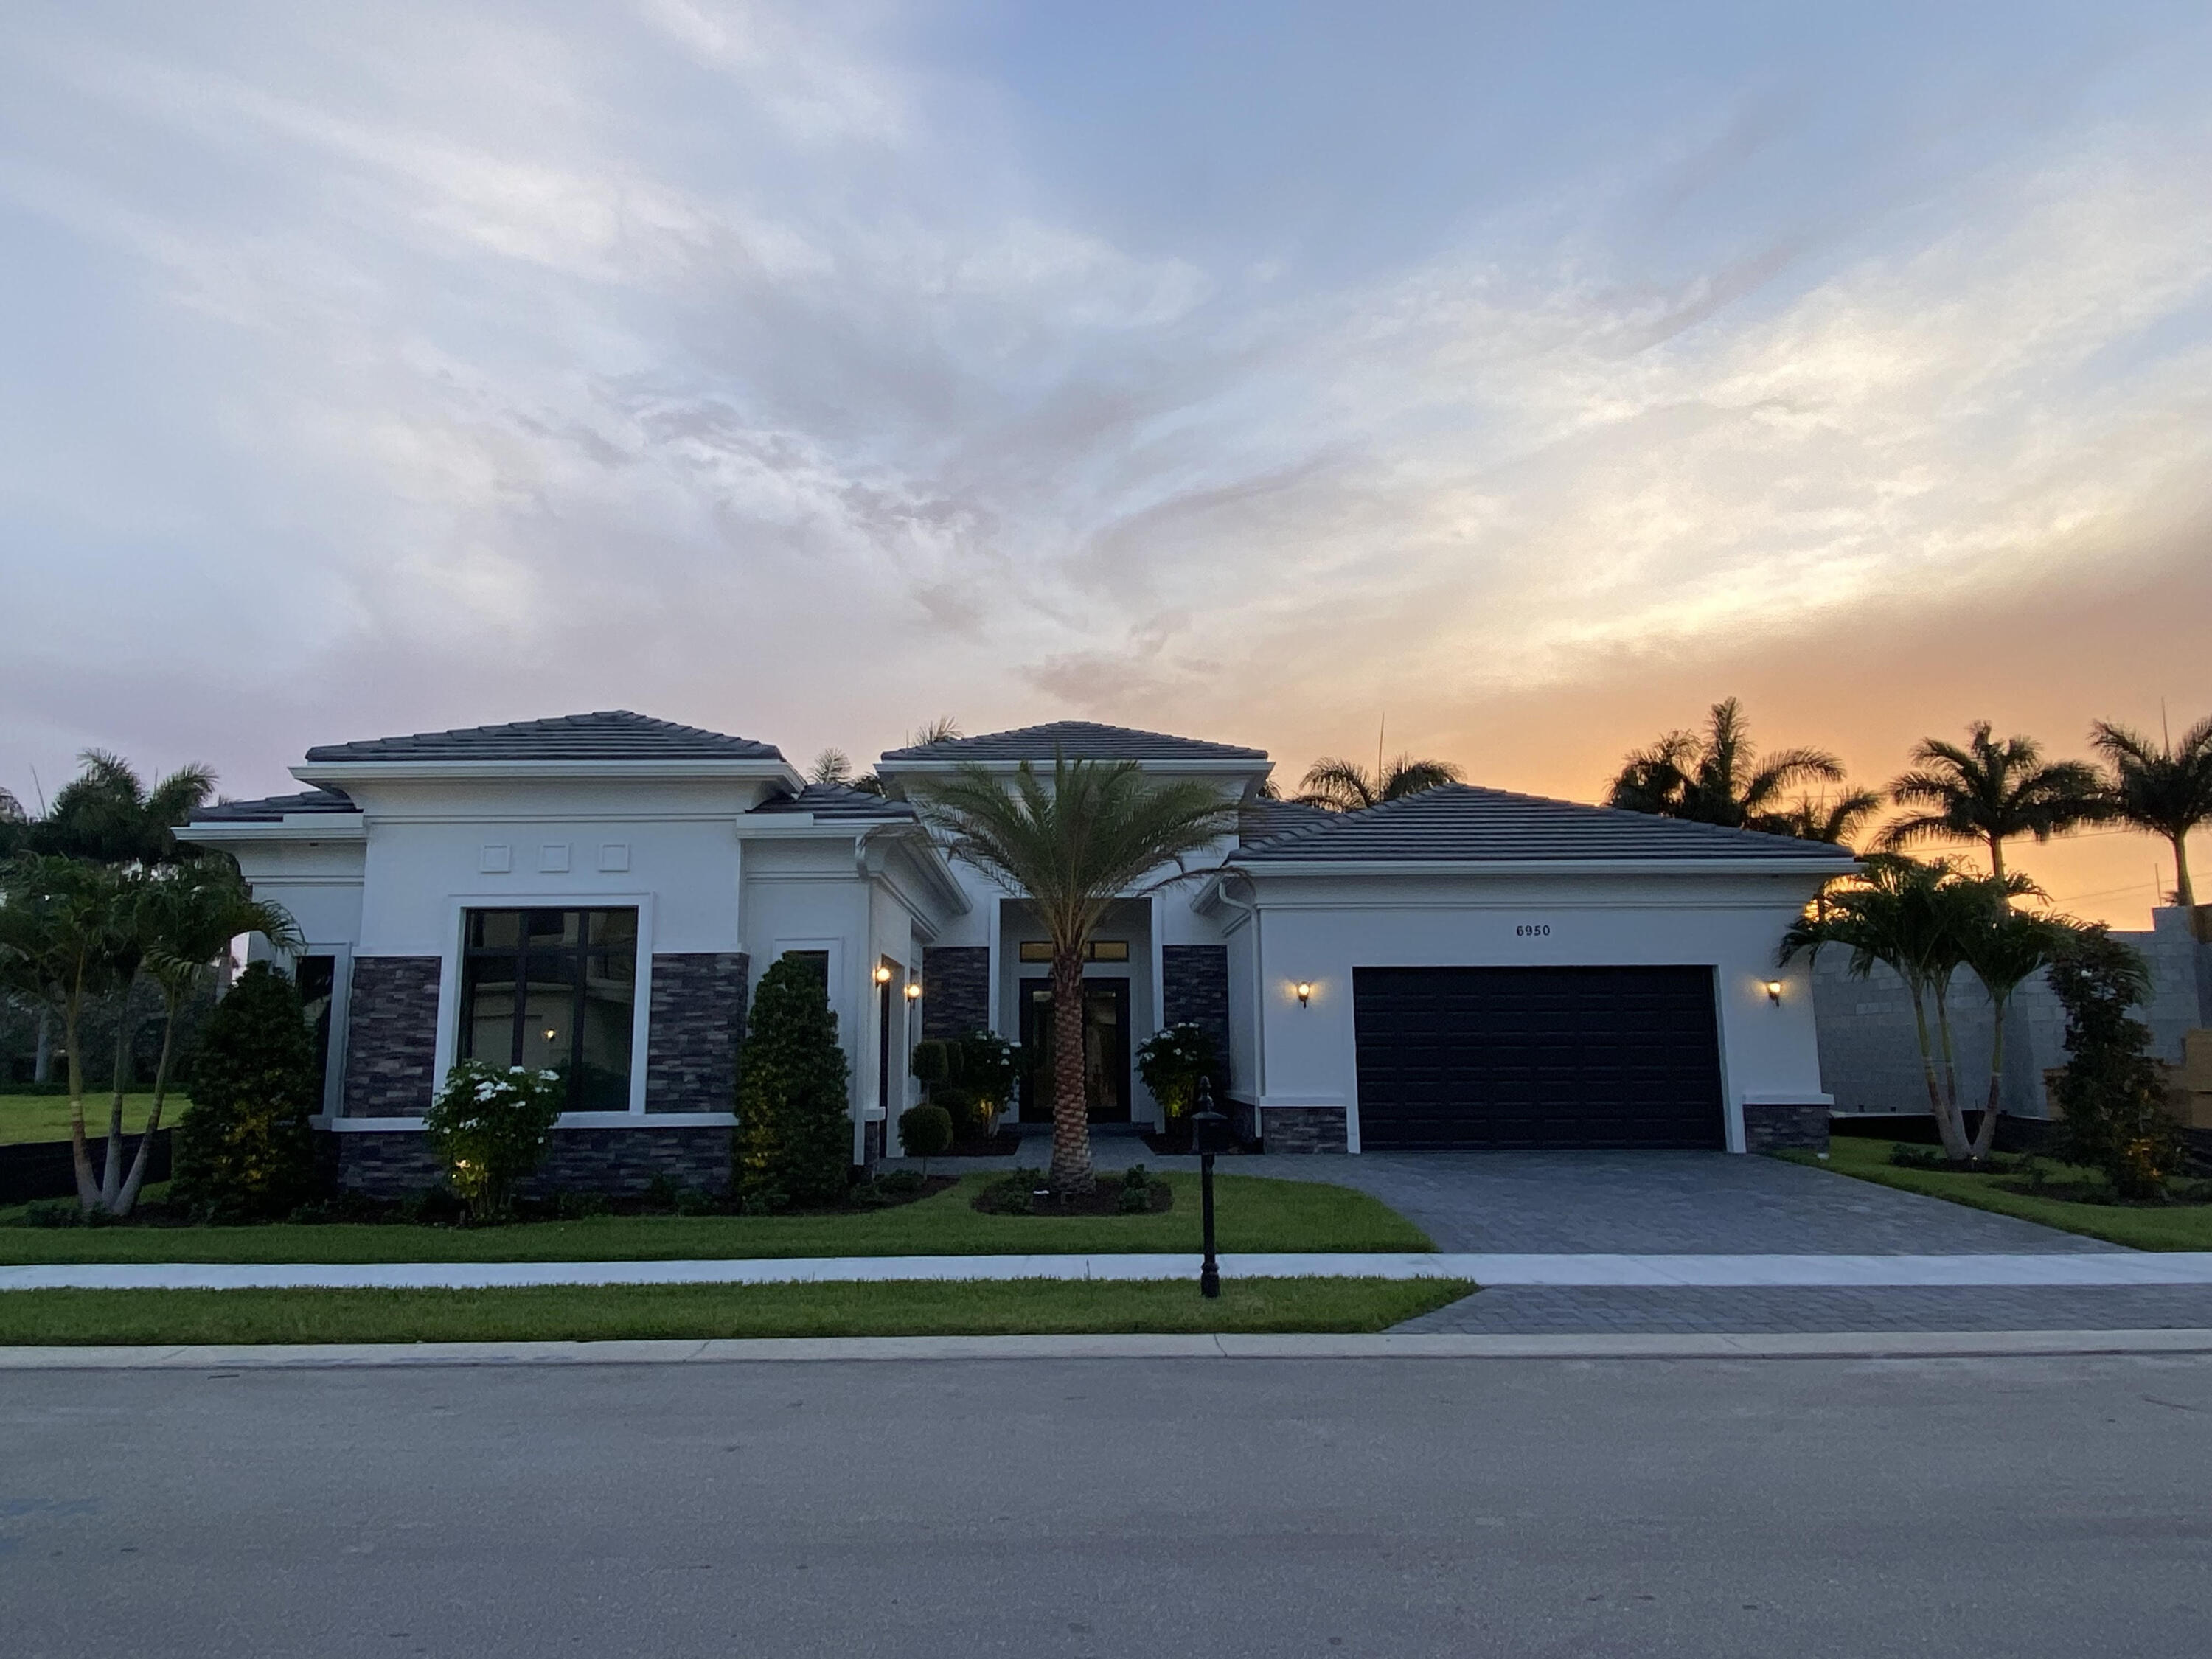 6950 28th Avenue - 3/3 in ROYAL PALM POLO PLAT